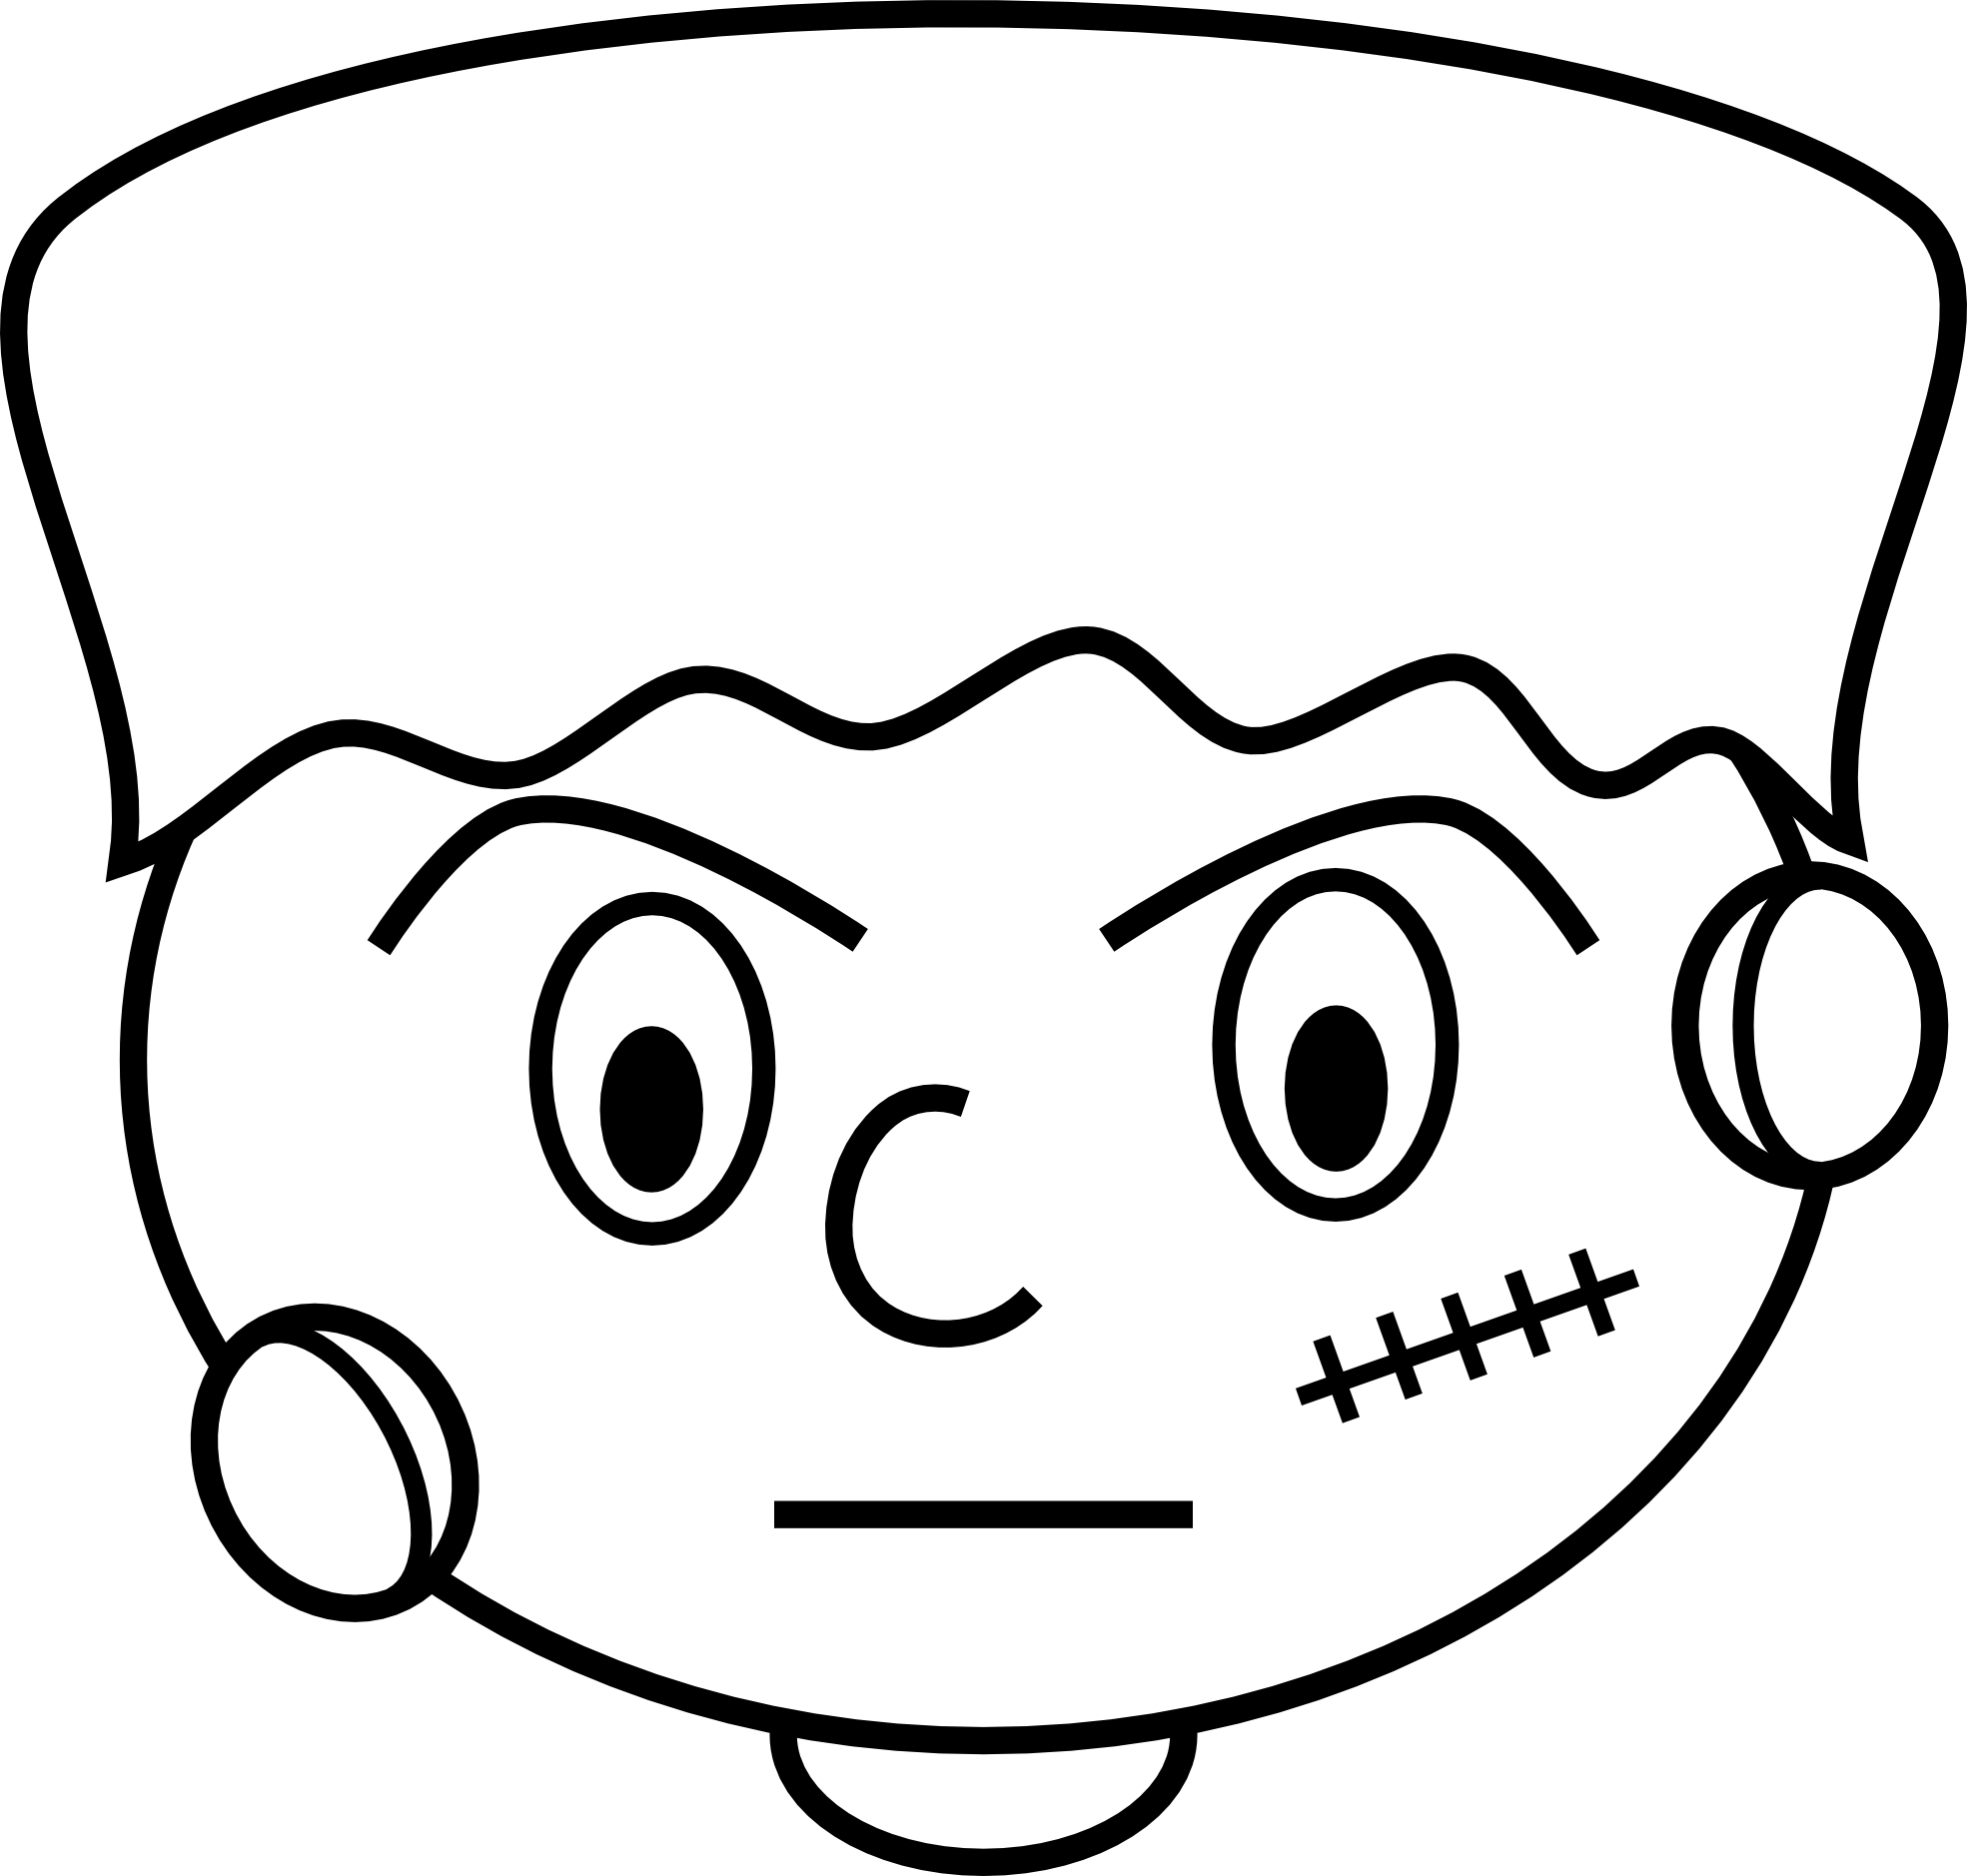 Free frankenstein cartoon face. Dory clipart black and white